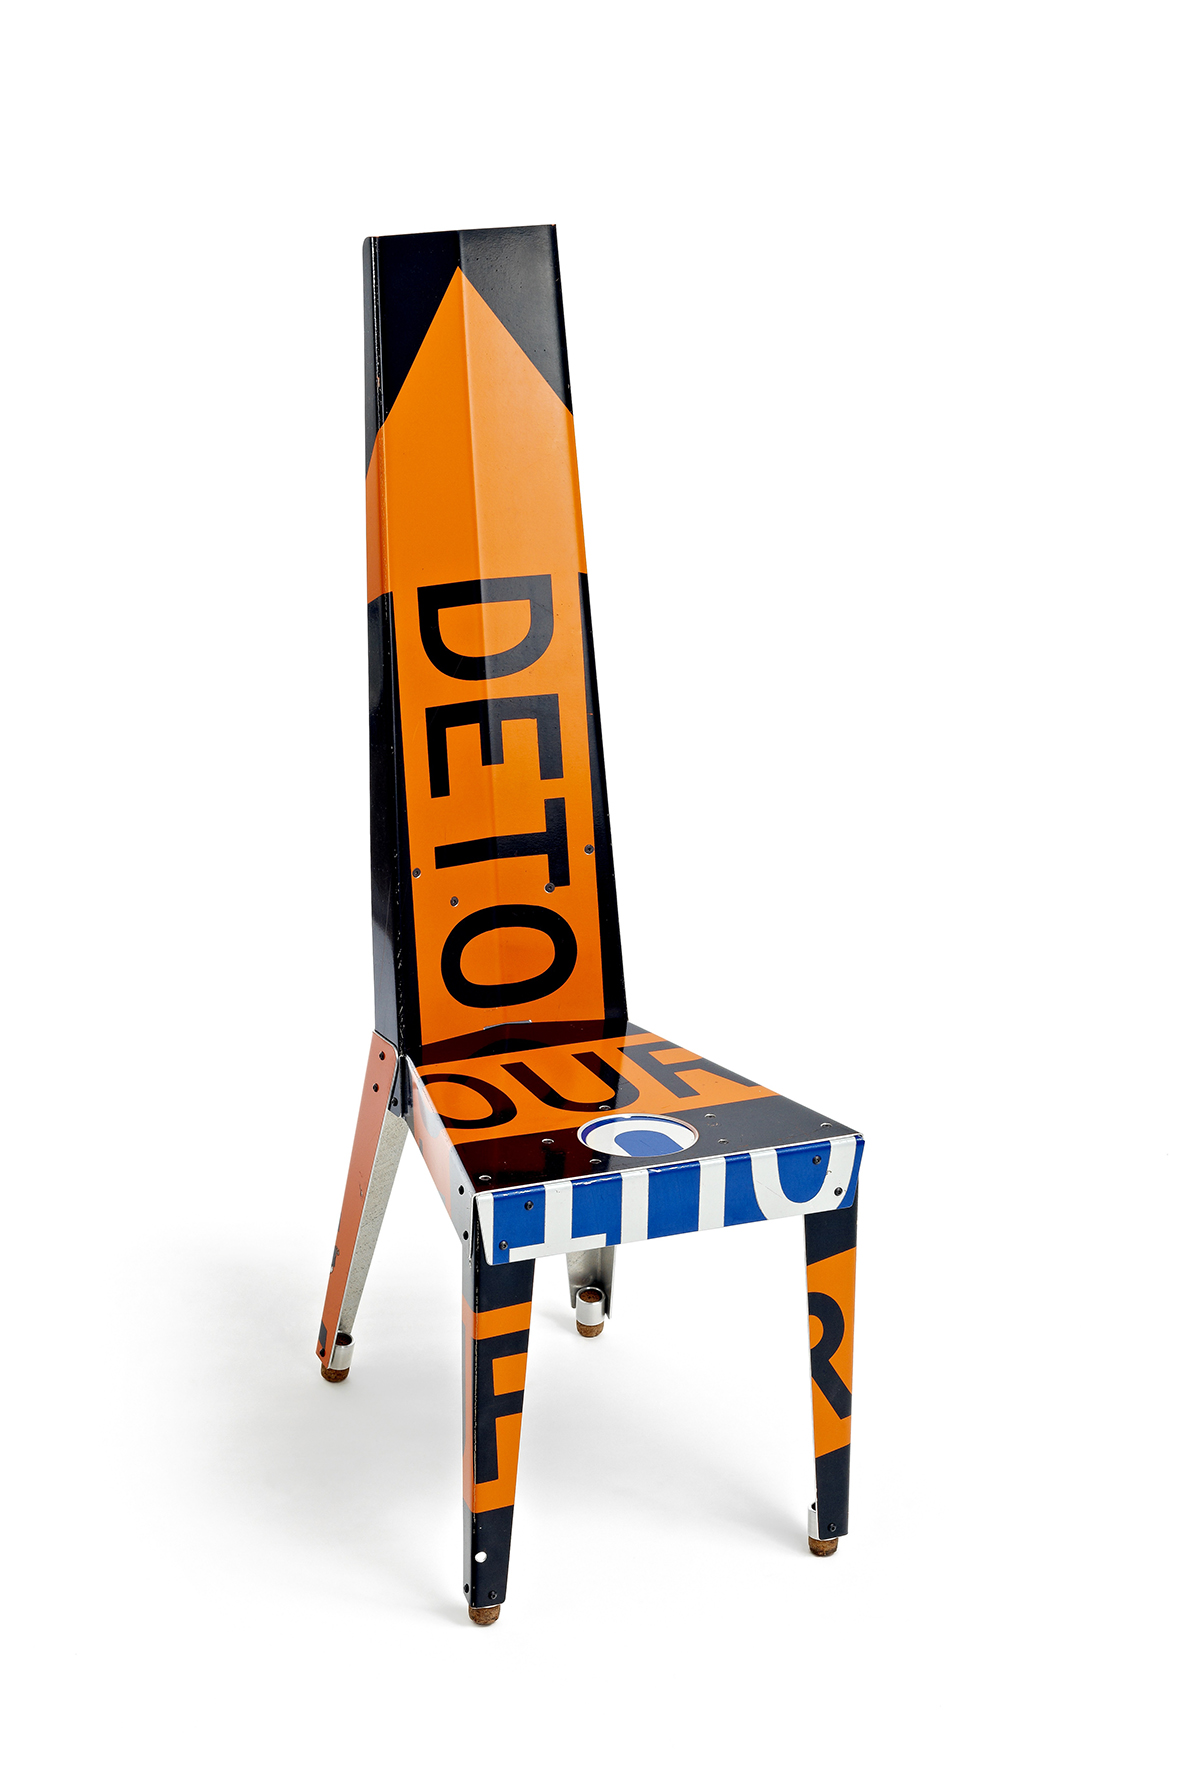 DETOUR Transit Chair